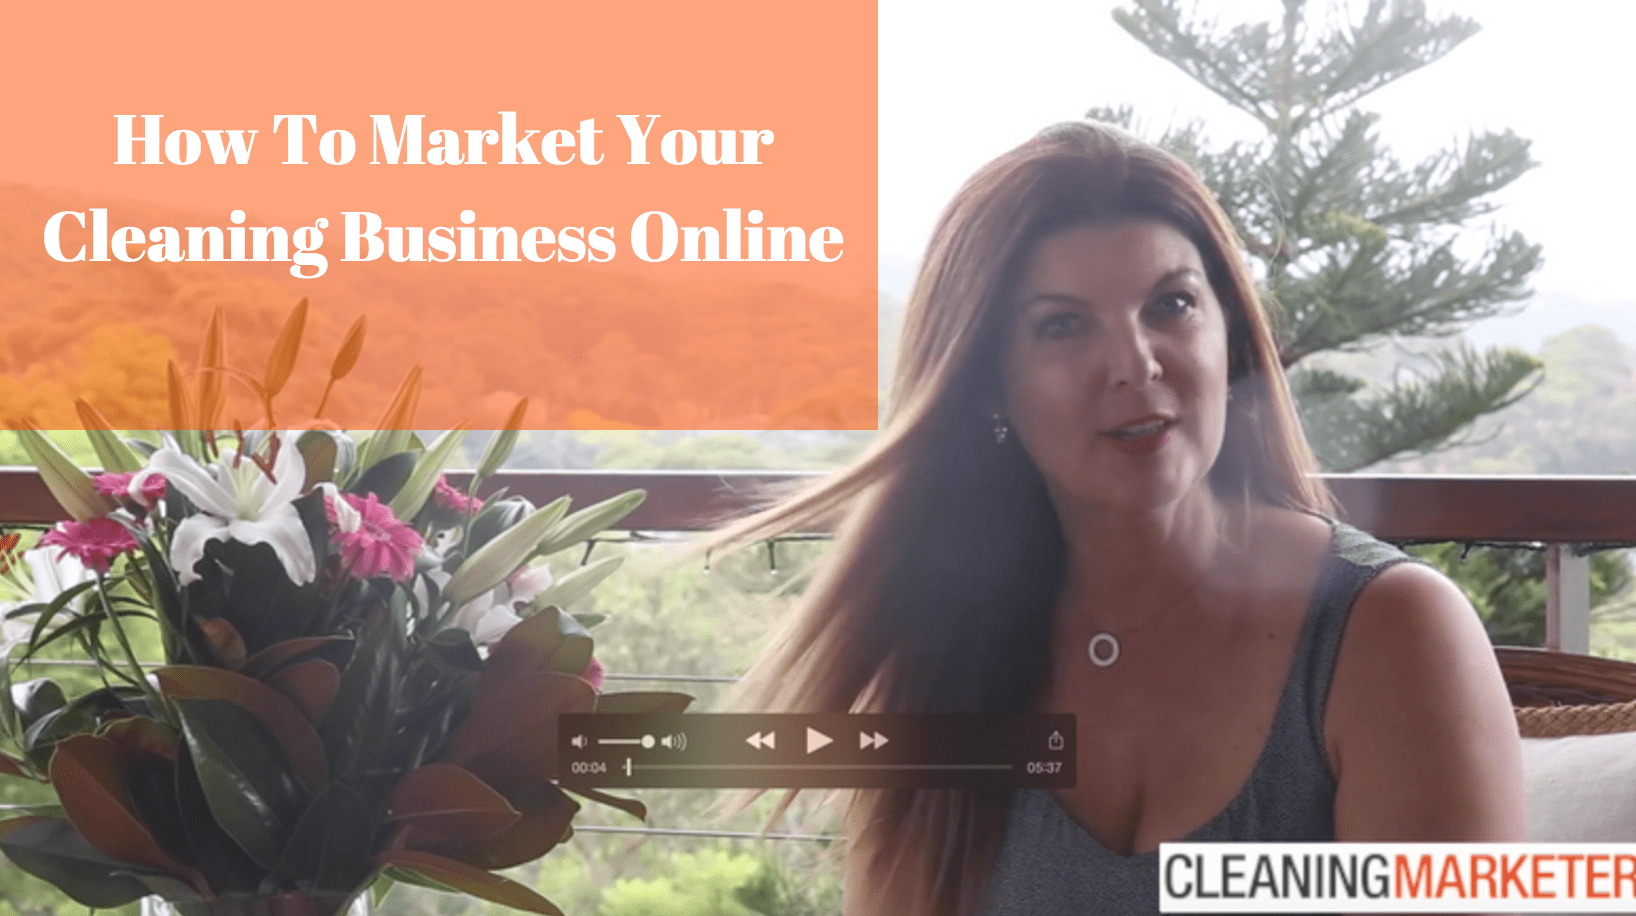 How To Market Your Cleaning Business